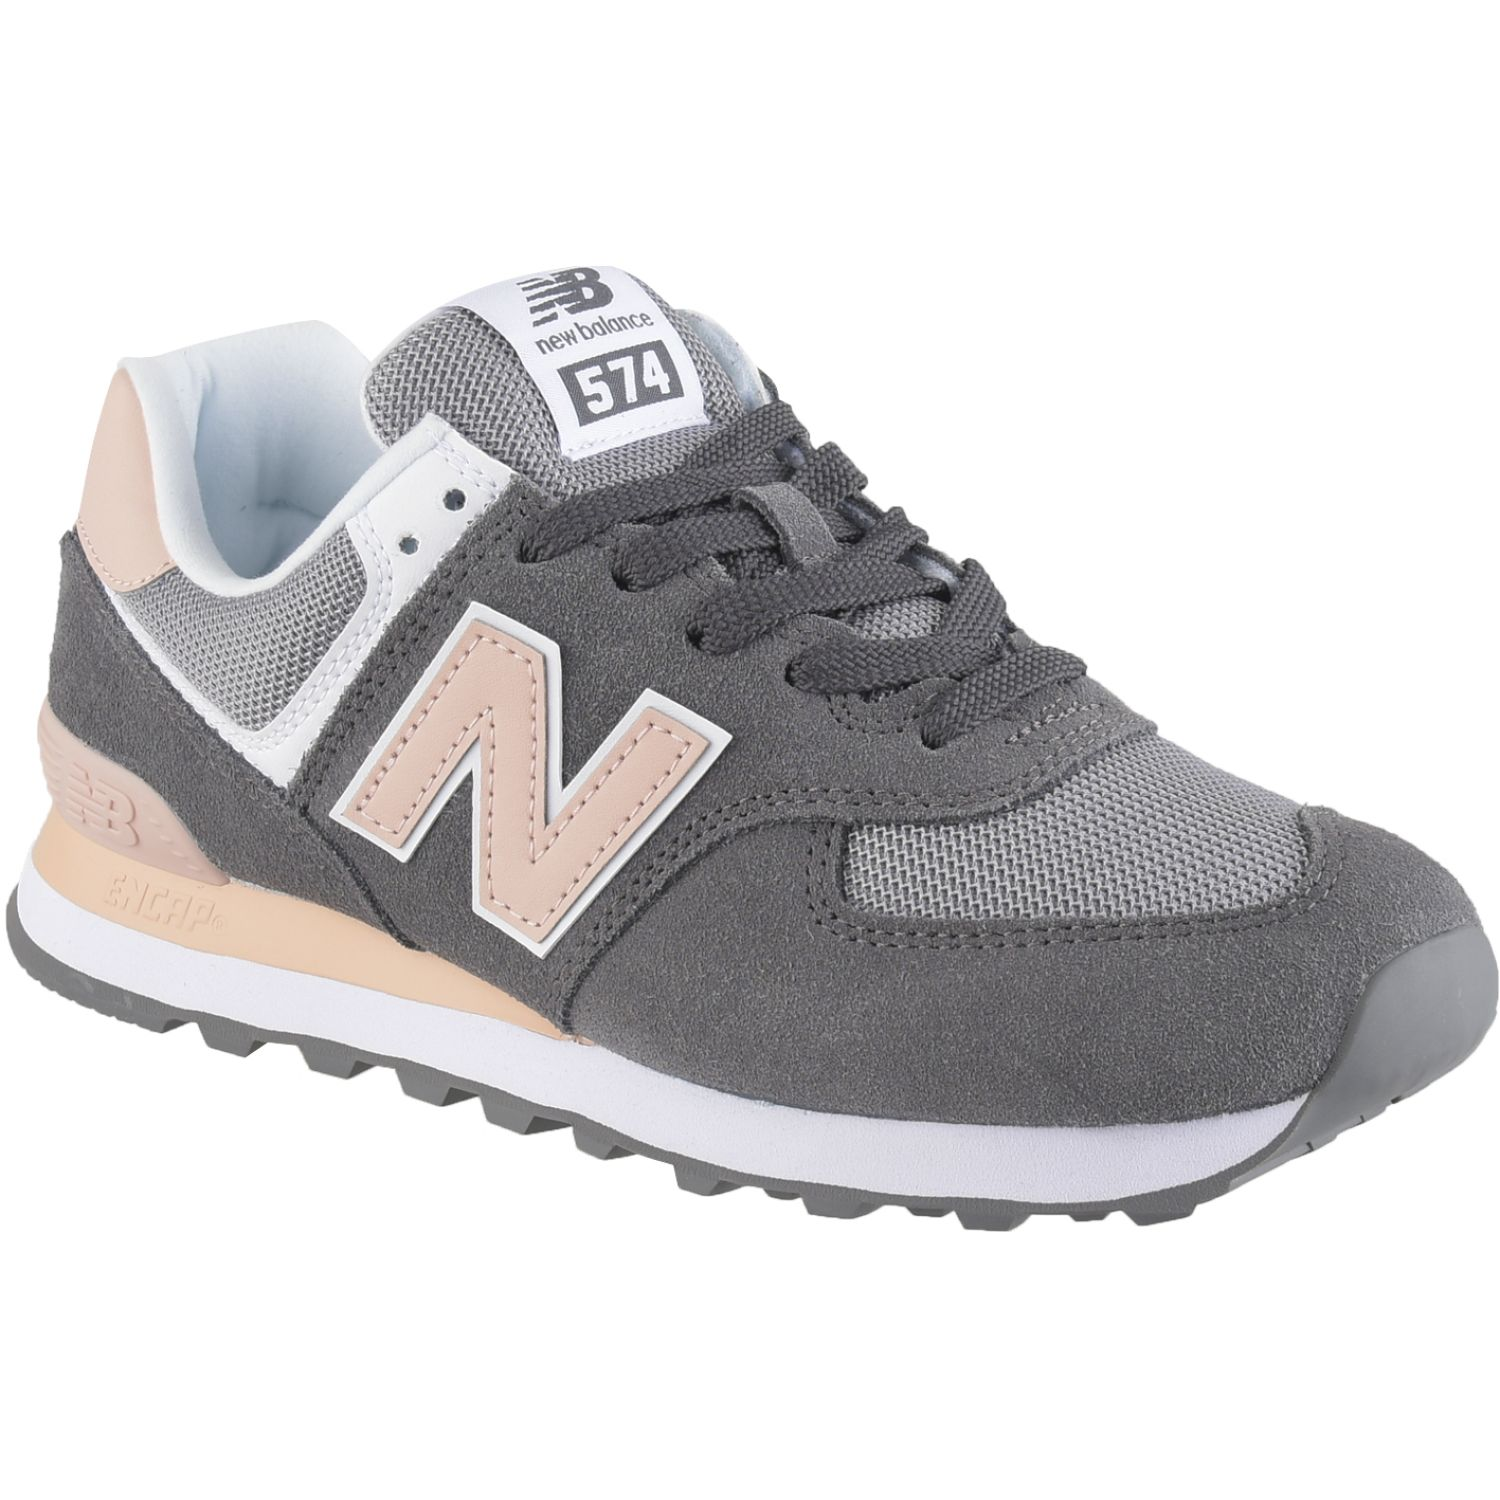 New Balance 574 Gris / rosado Walking